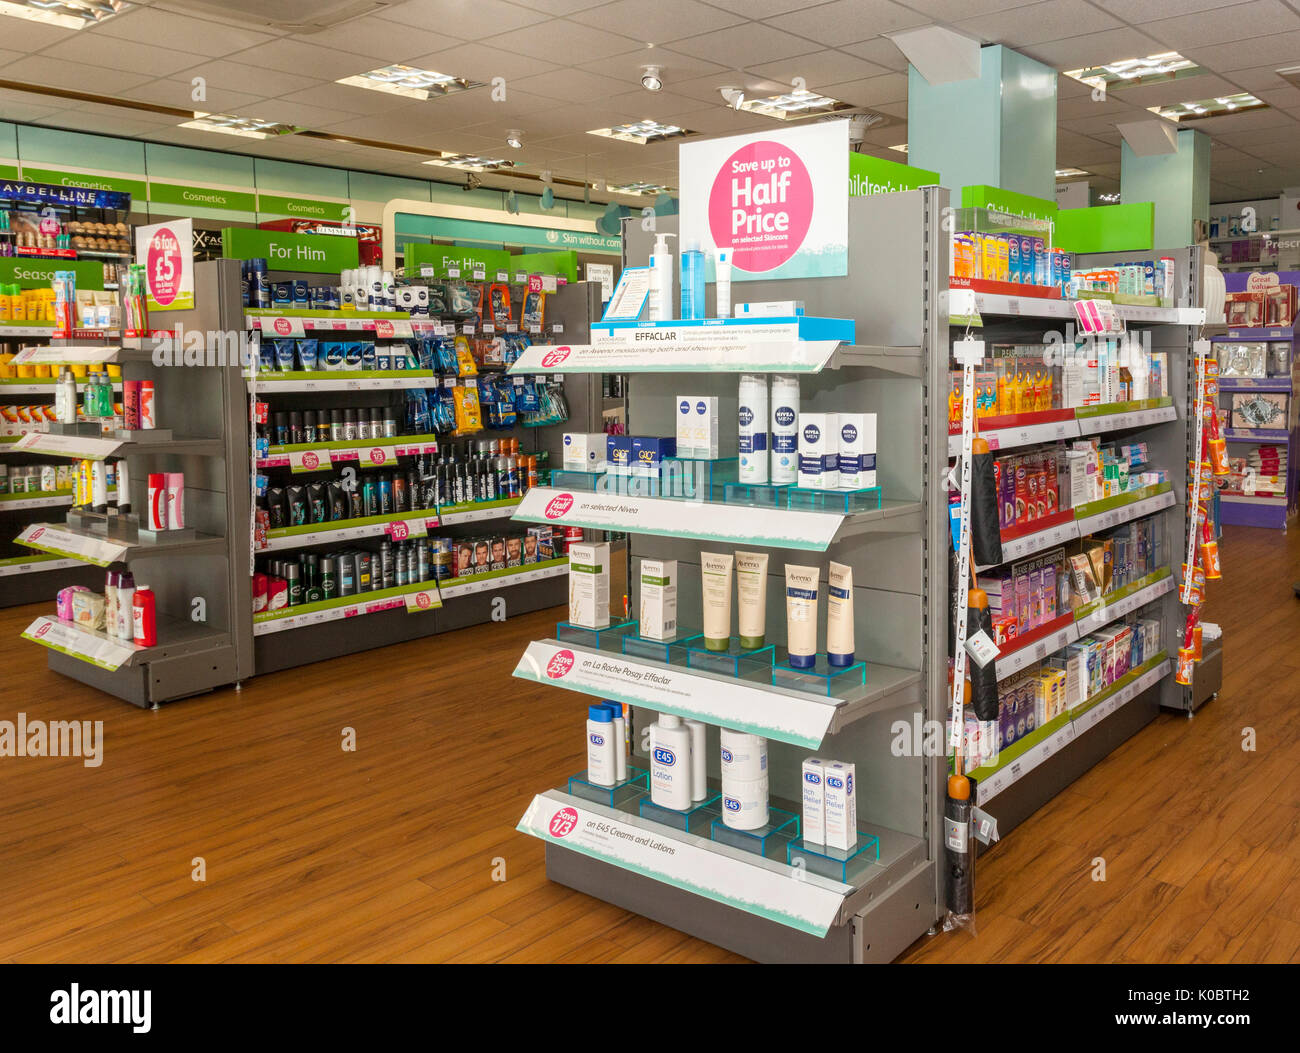 Interior and displays in a chemist shop,pharmacy shelf,pharmacists,drug store Stock Photo